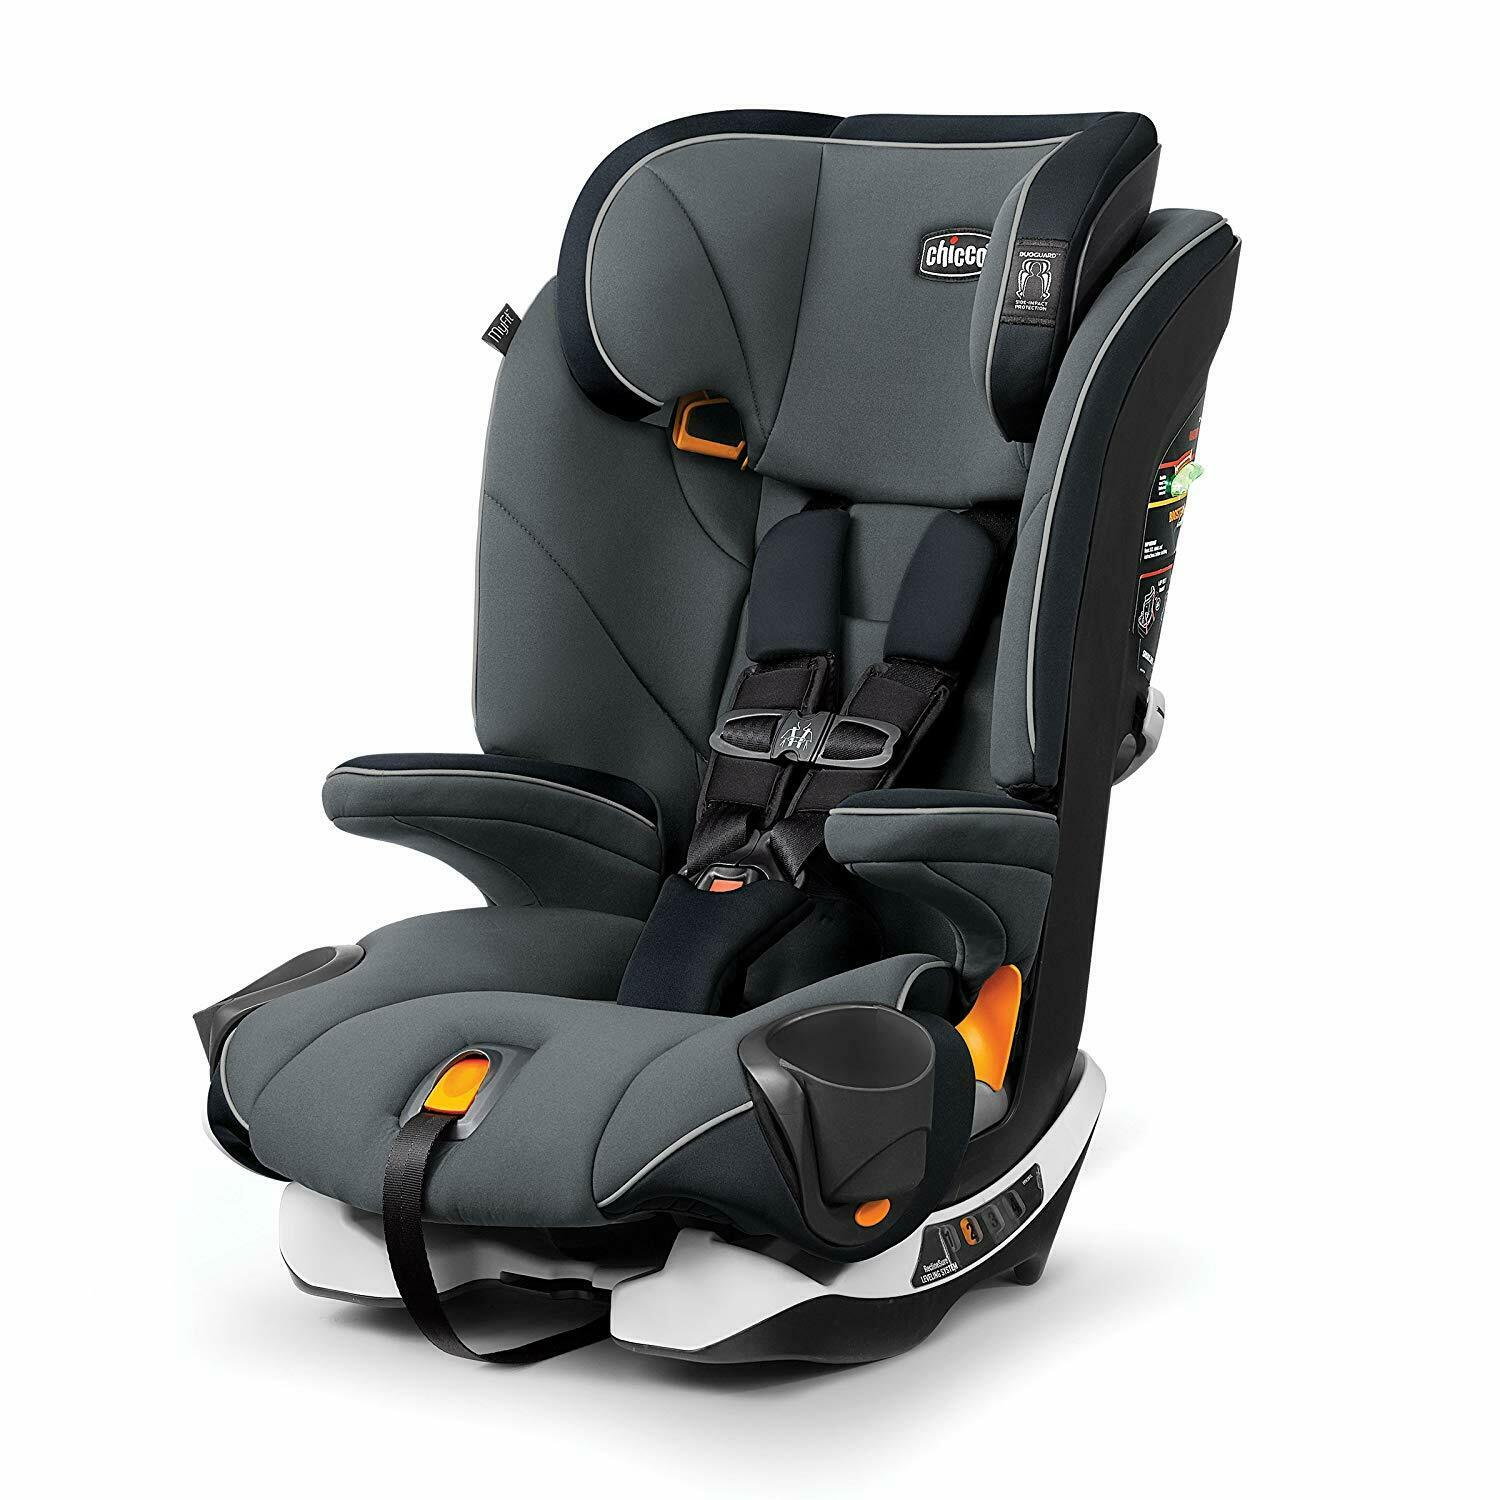 Chicco MyFit Harness Booster Car Seat - Fathom